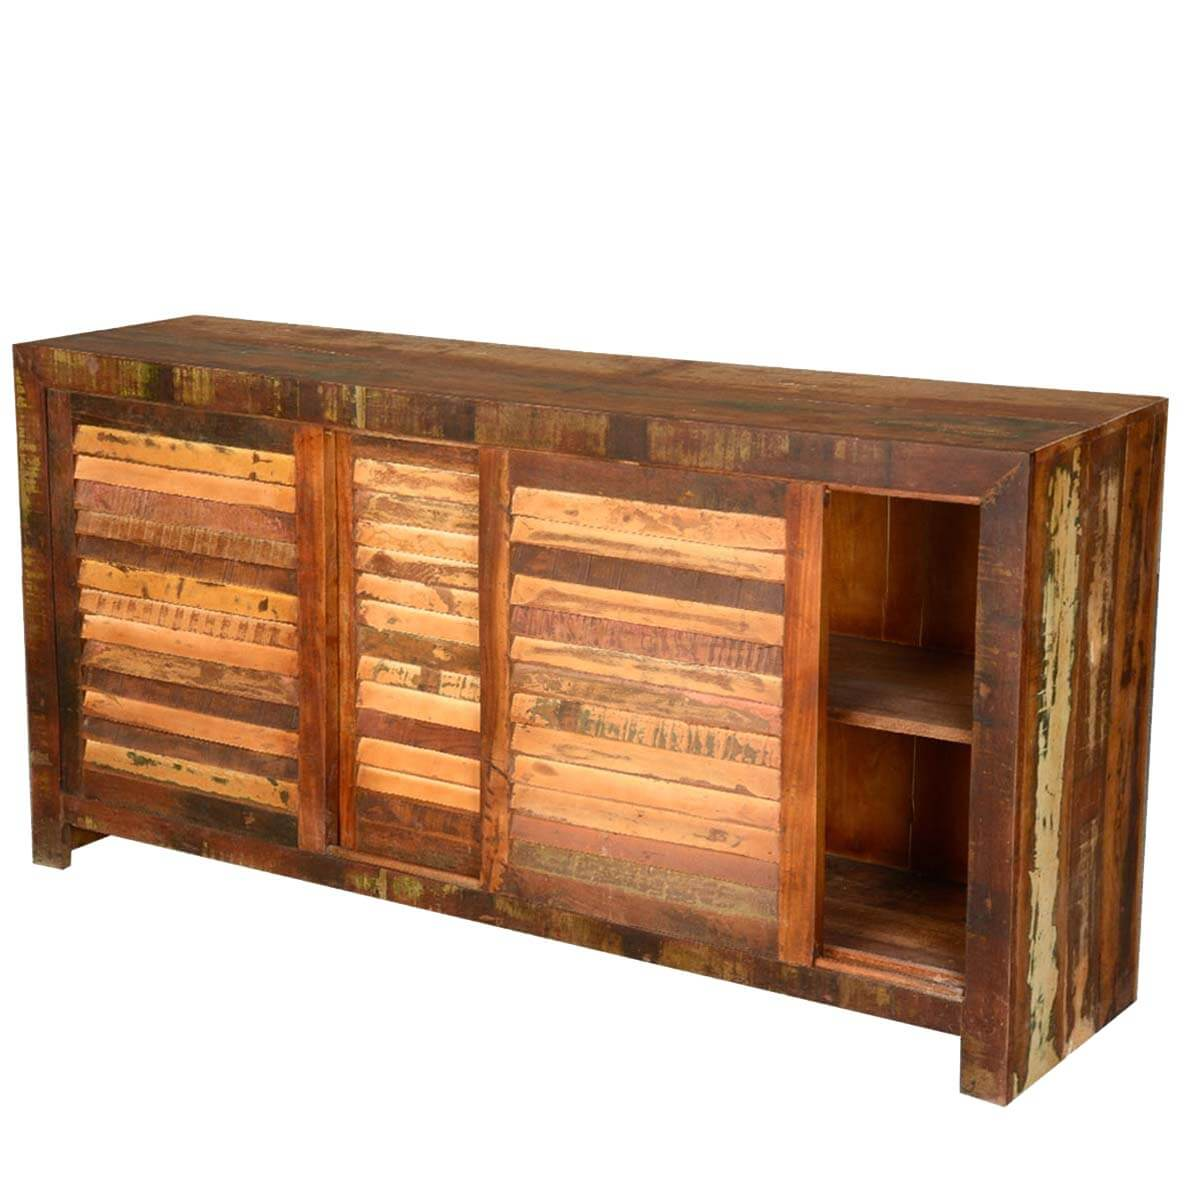 Rustic Reclaimed Wood Distressed Sliding Door Buffet  : 4273 from sierralivingconcepts.com size 1200 x 1200 jpeg 122kB